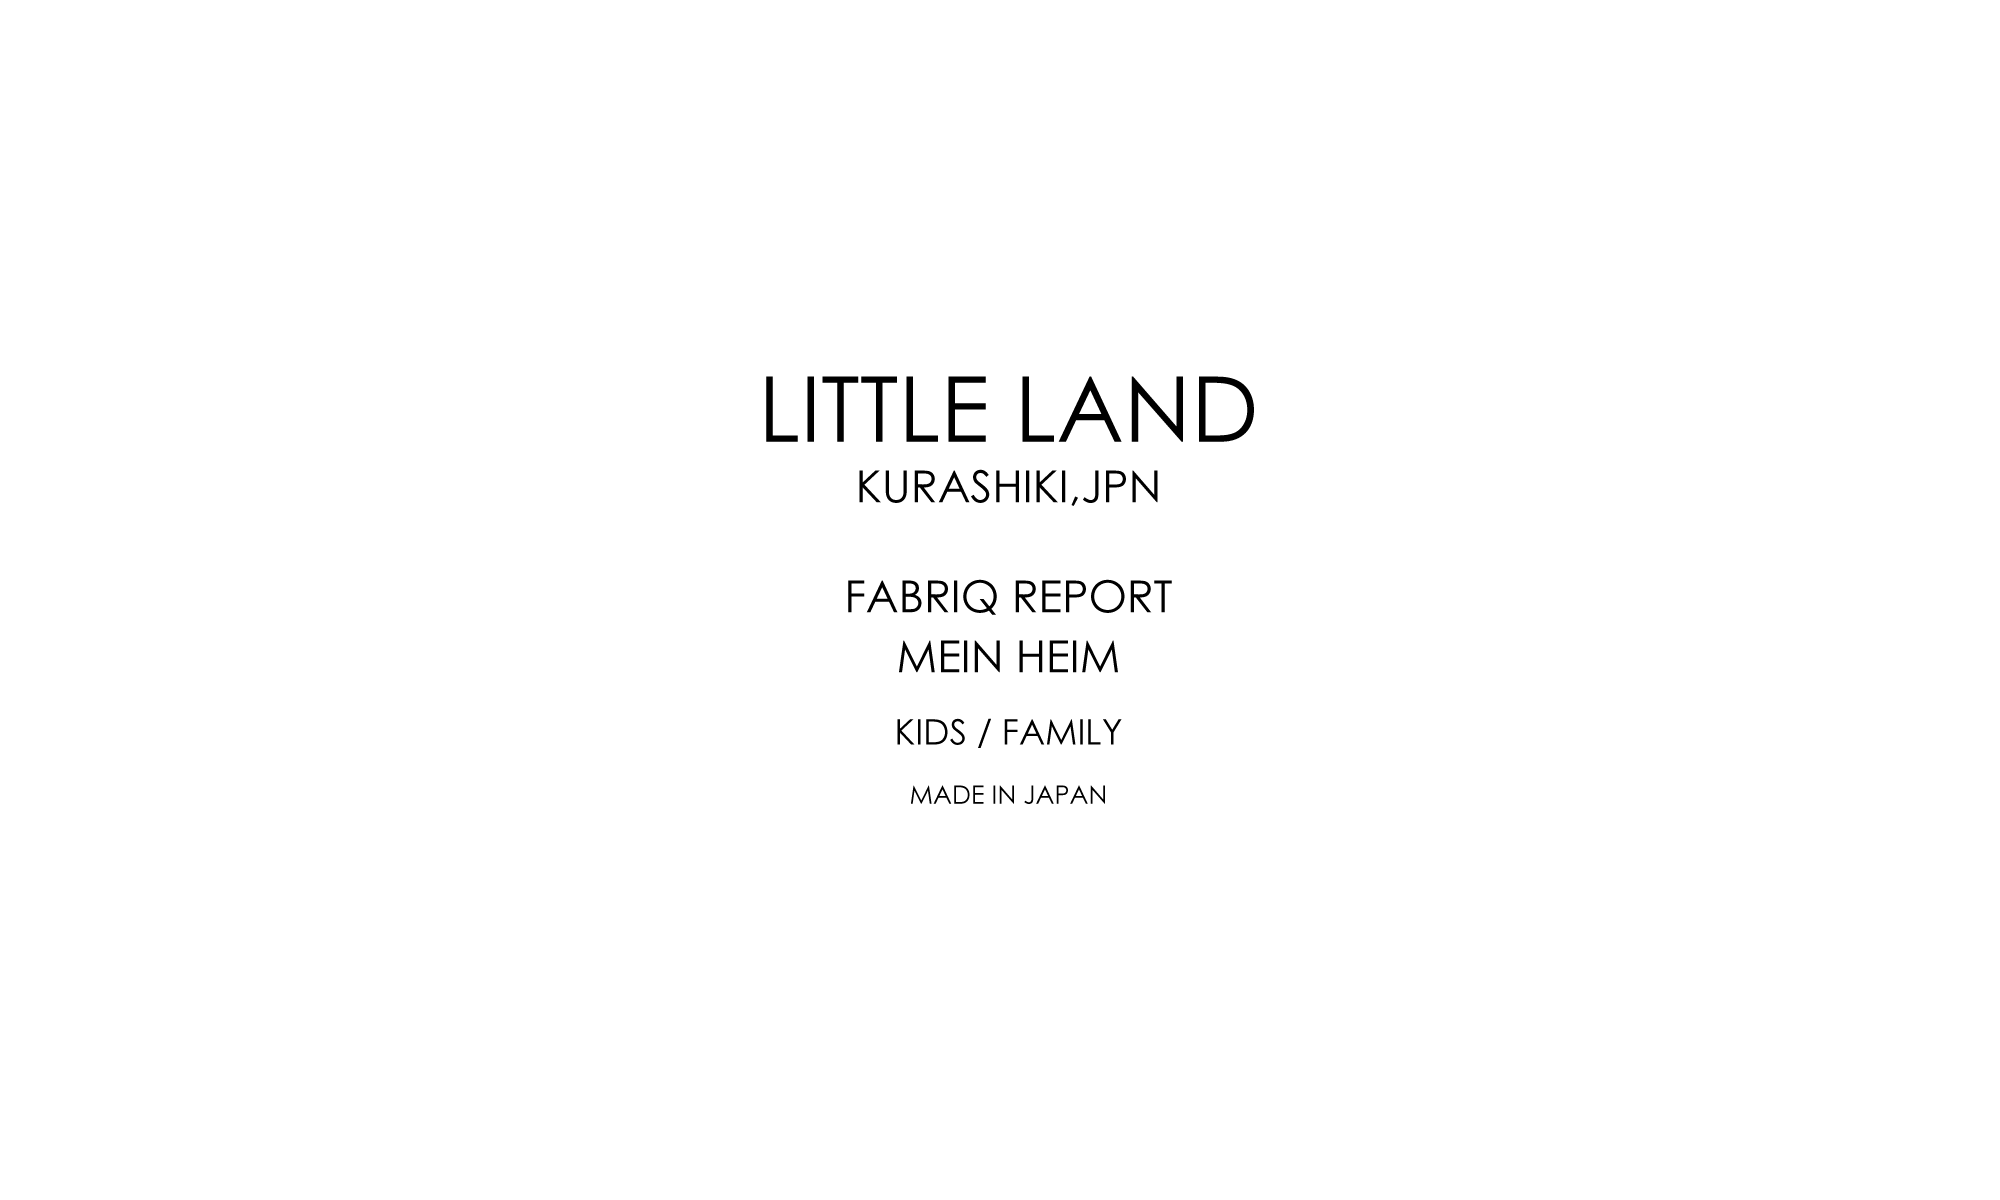 LITTLE LAND OFFICIAL